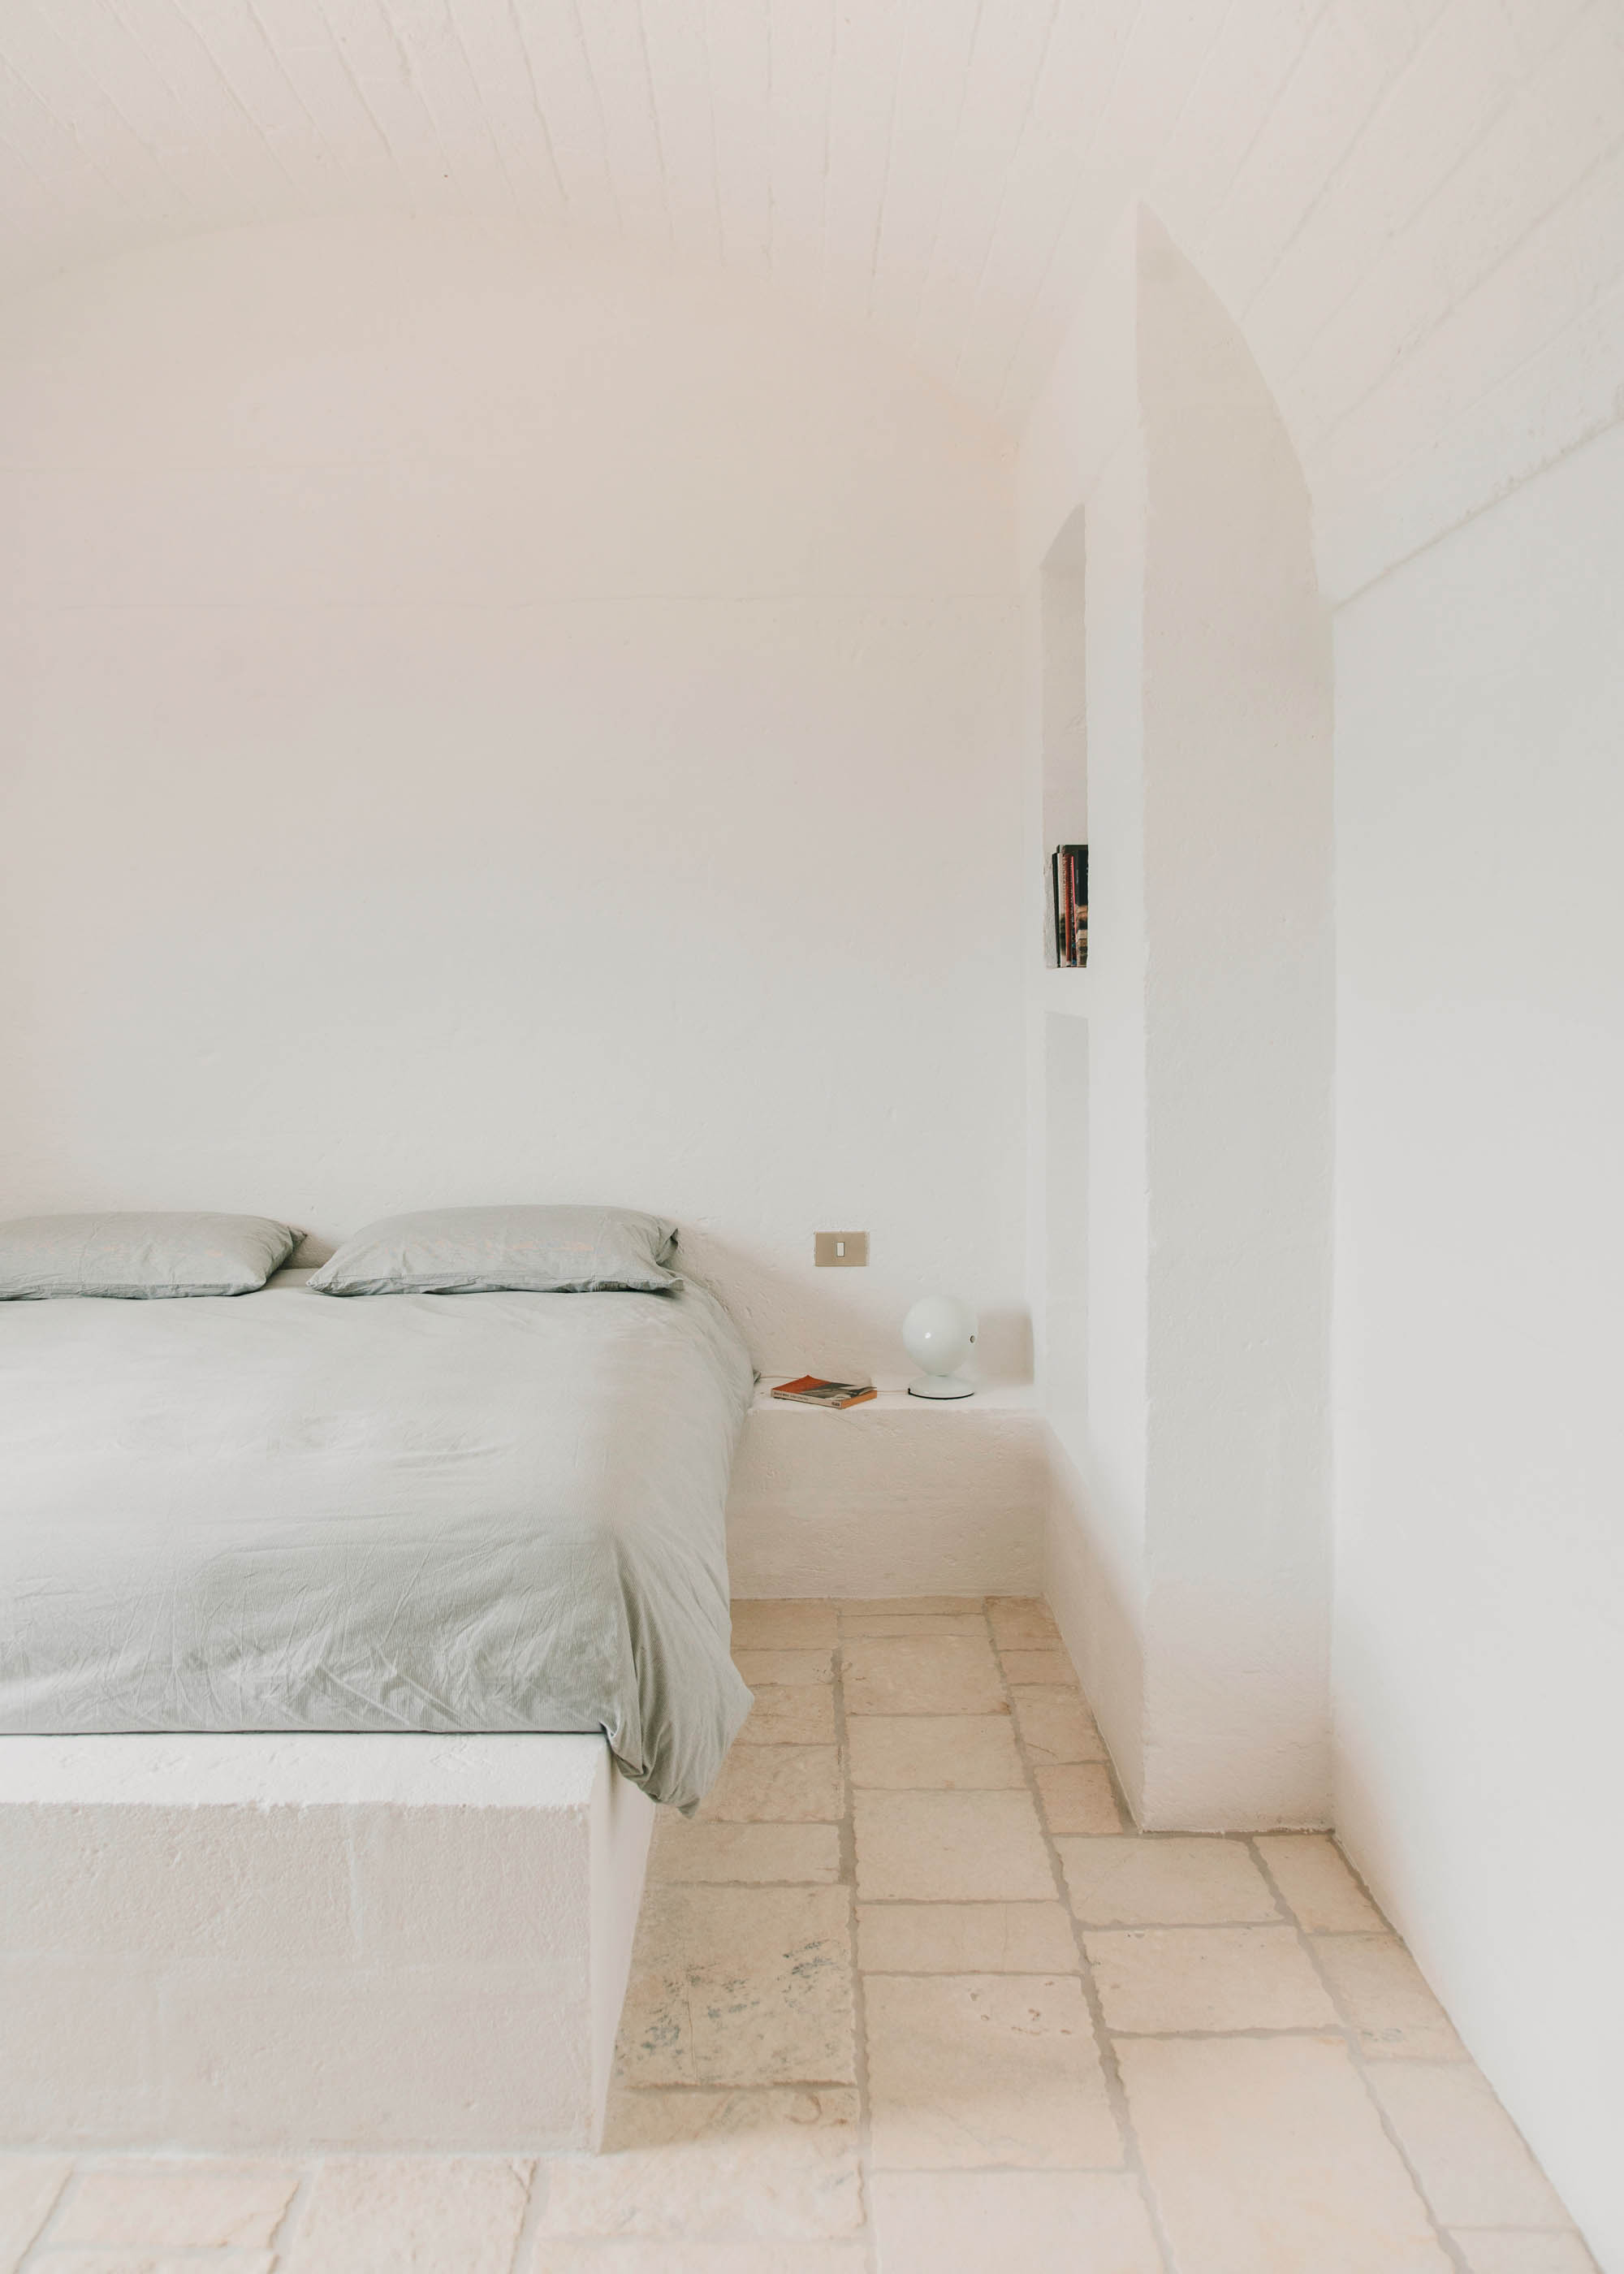 #italy #puglia #masseria #morosseta #hotels #interiors #bedroom #hotels